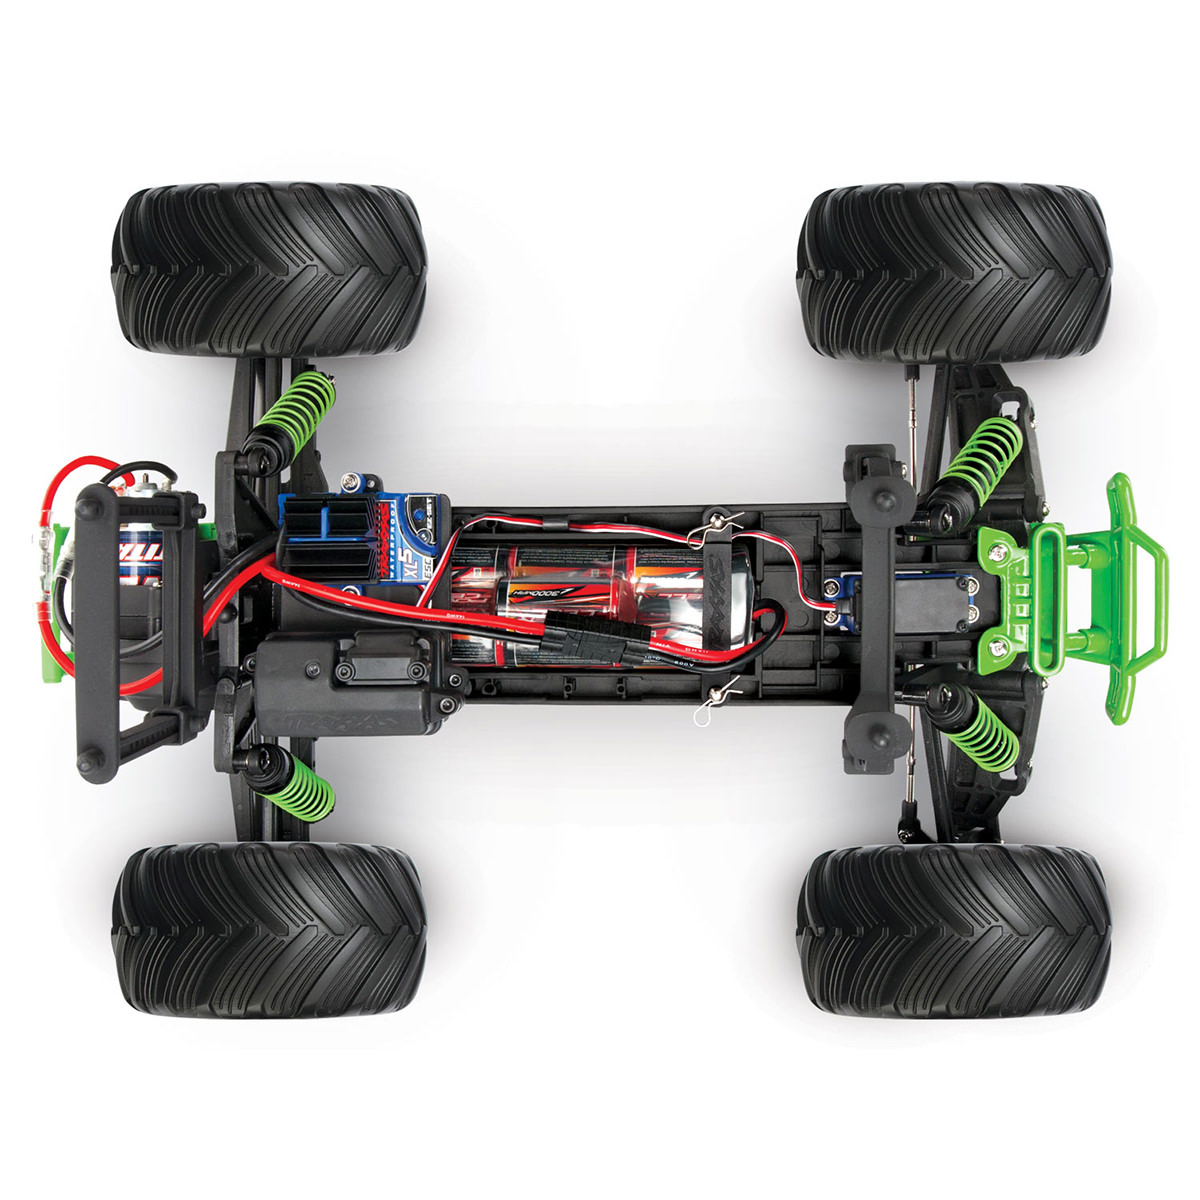 Traxxas 3604A Grave Digger RC Monster Truck at Hobby Warehouse